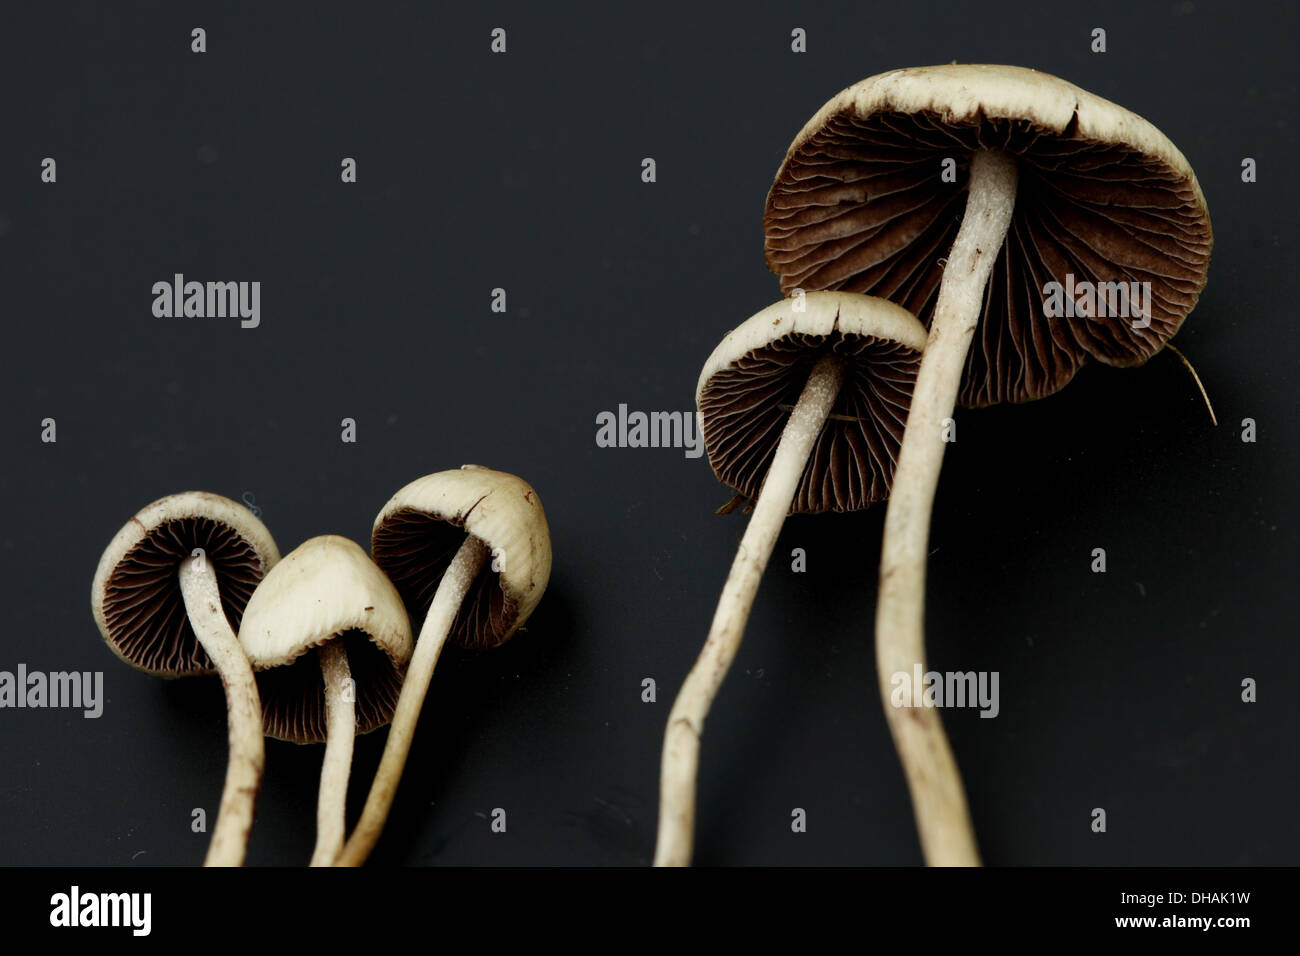 Psilocybe Stock Photos & Psilocybe Stock Images - Page 3 - Alamy